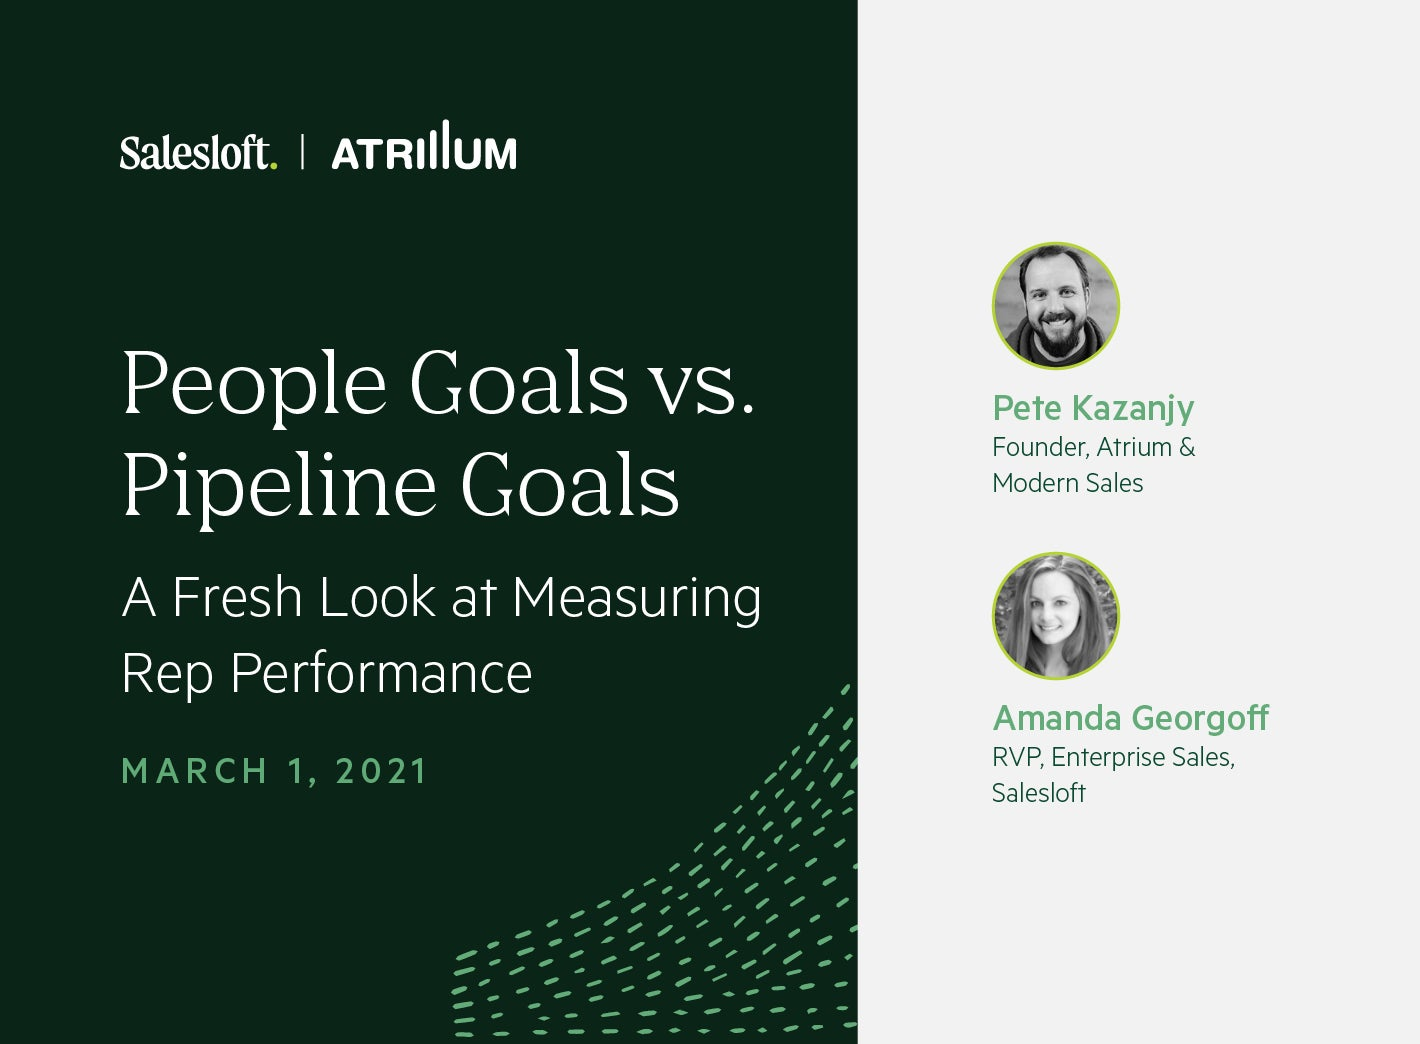 People Goals vs. Pipeline Goals: A Fresh Look at Measuring Rep Performance